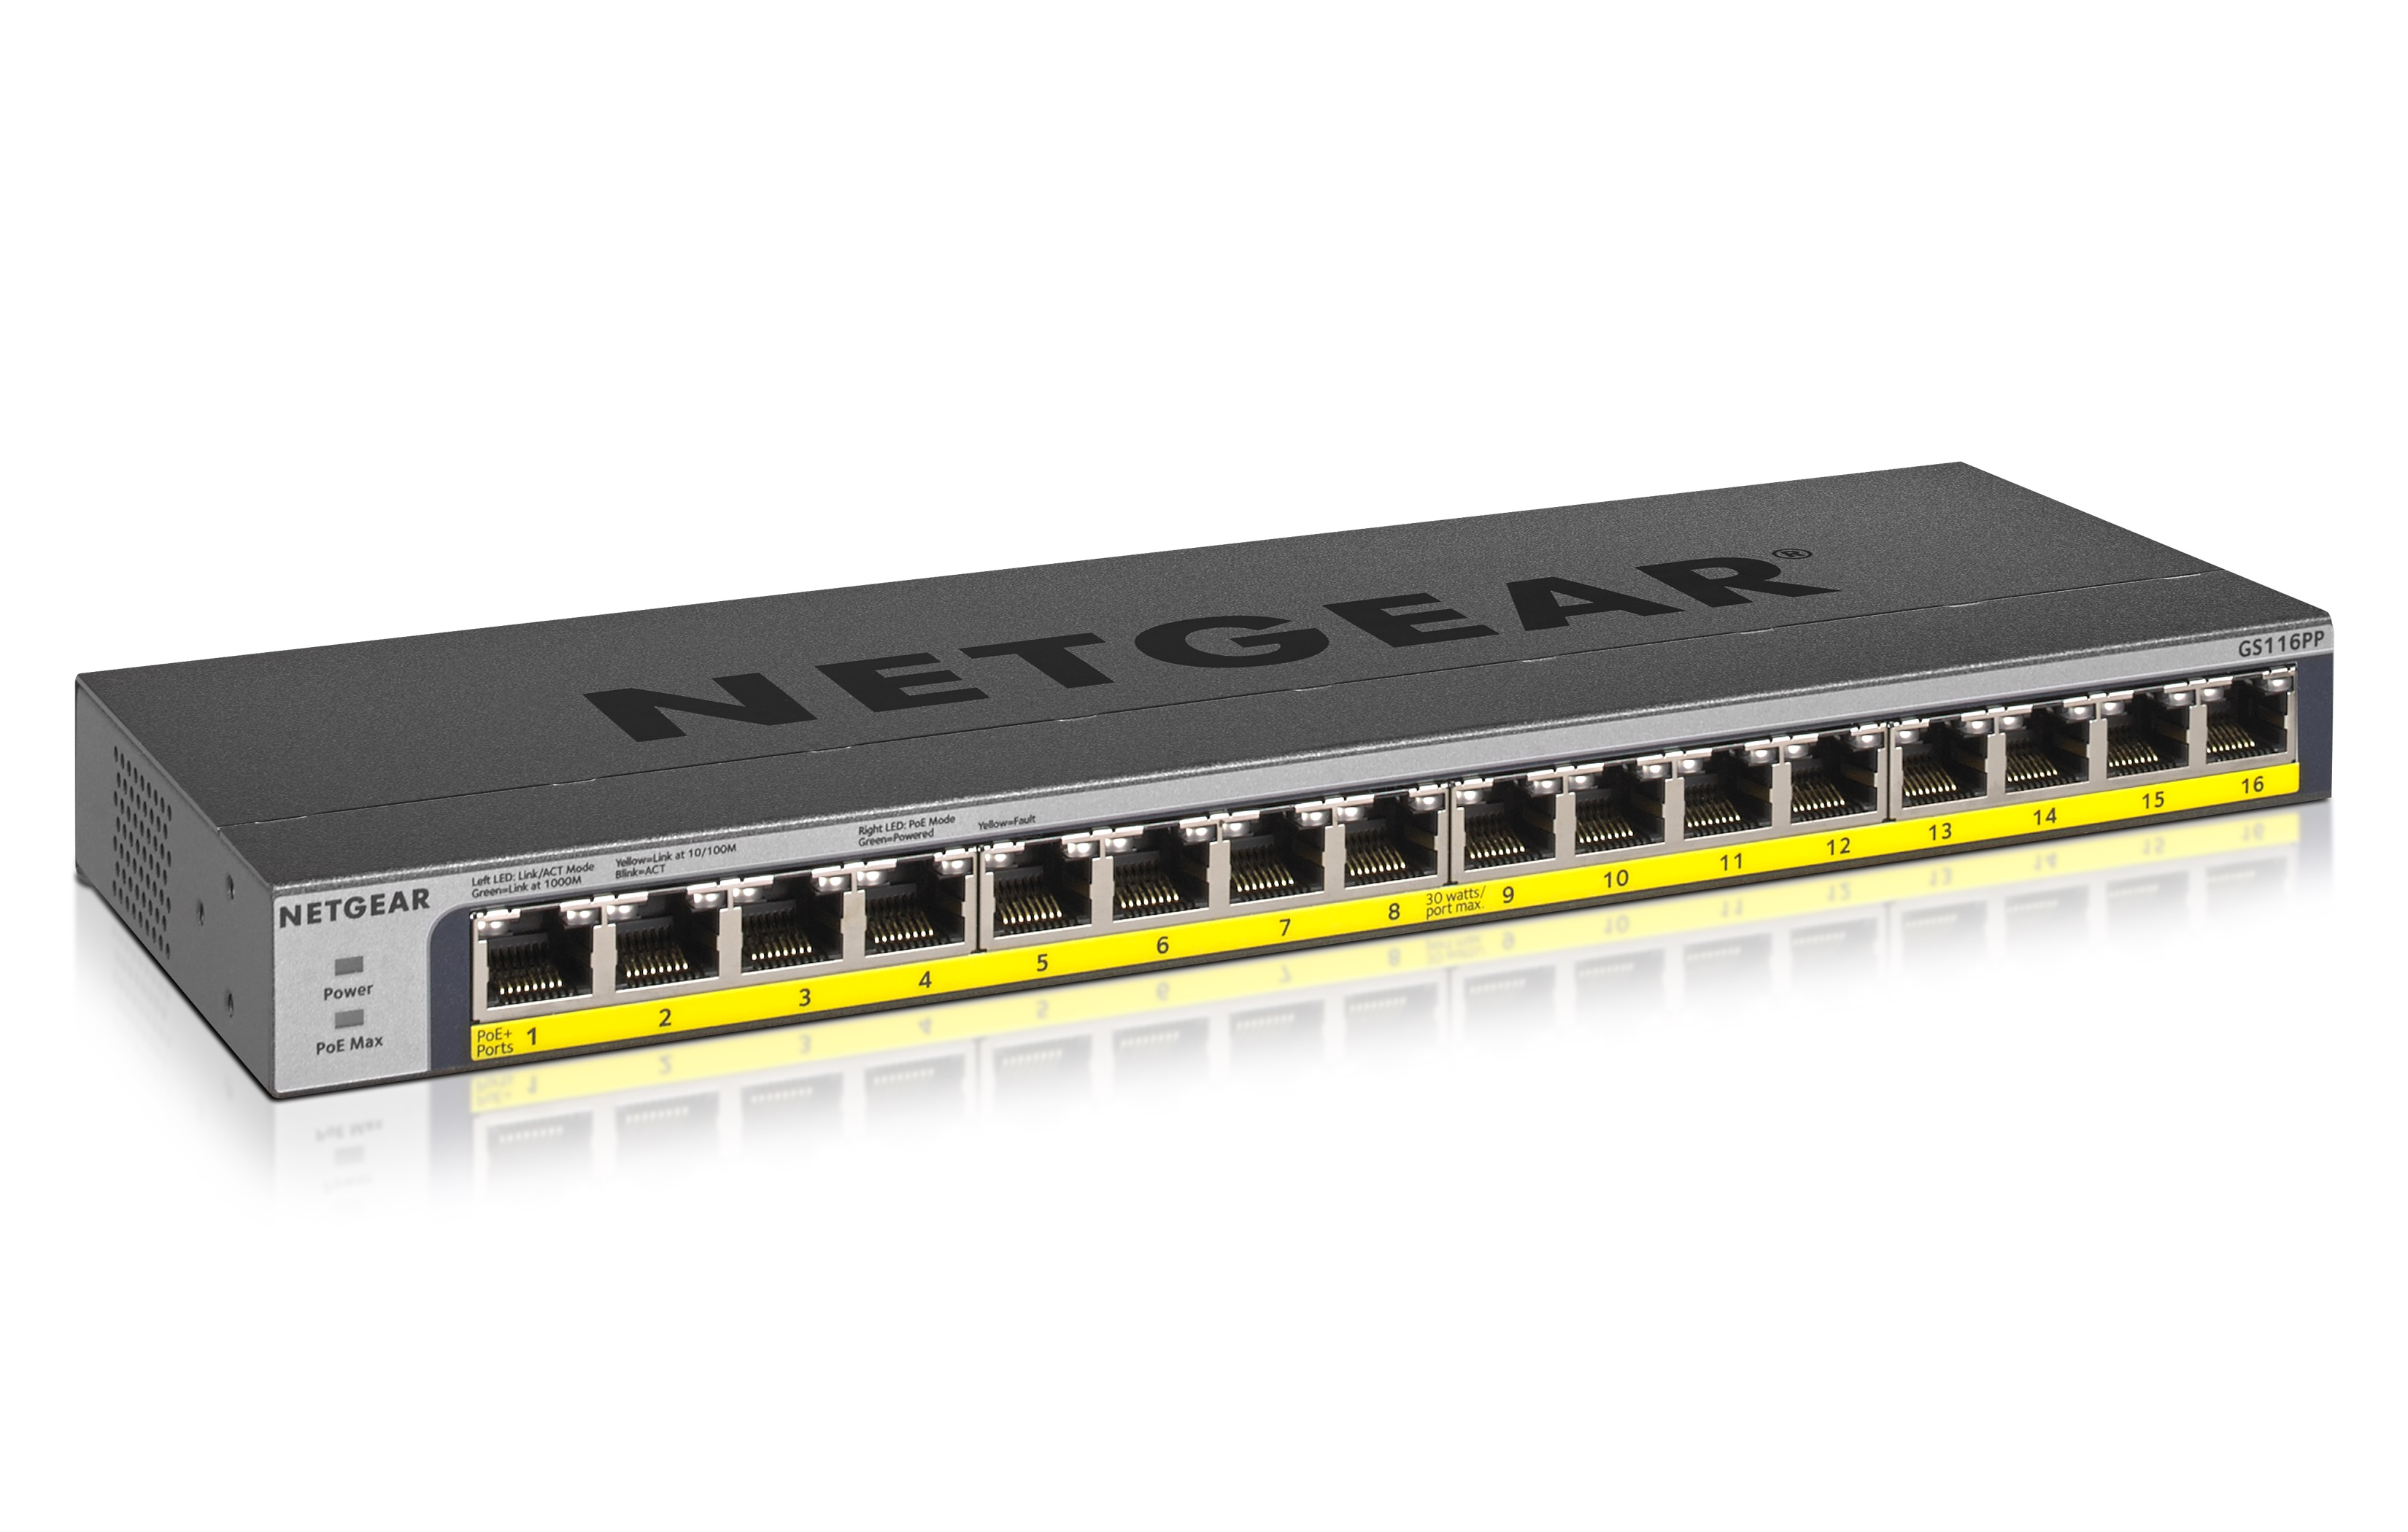 16-PORT GIGABIT ETHERNET HIGH-POWER UNMANAGED SWITCH WITH FLEXPOE